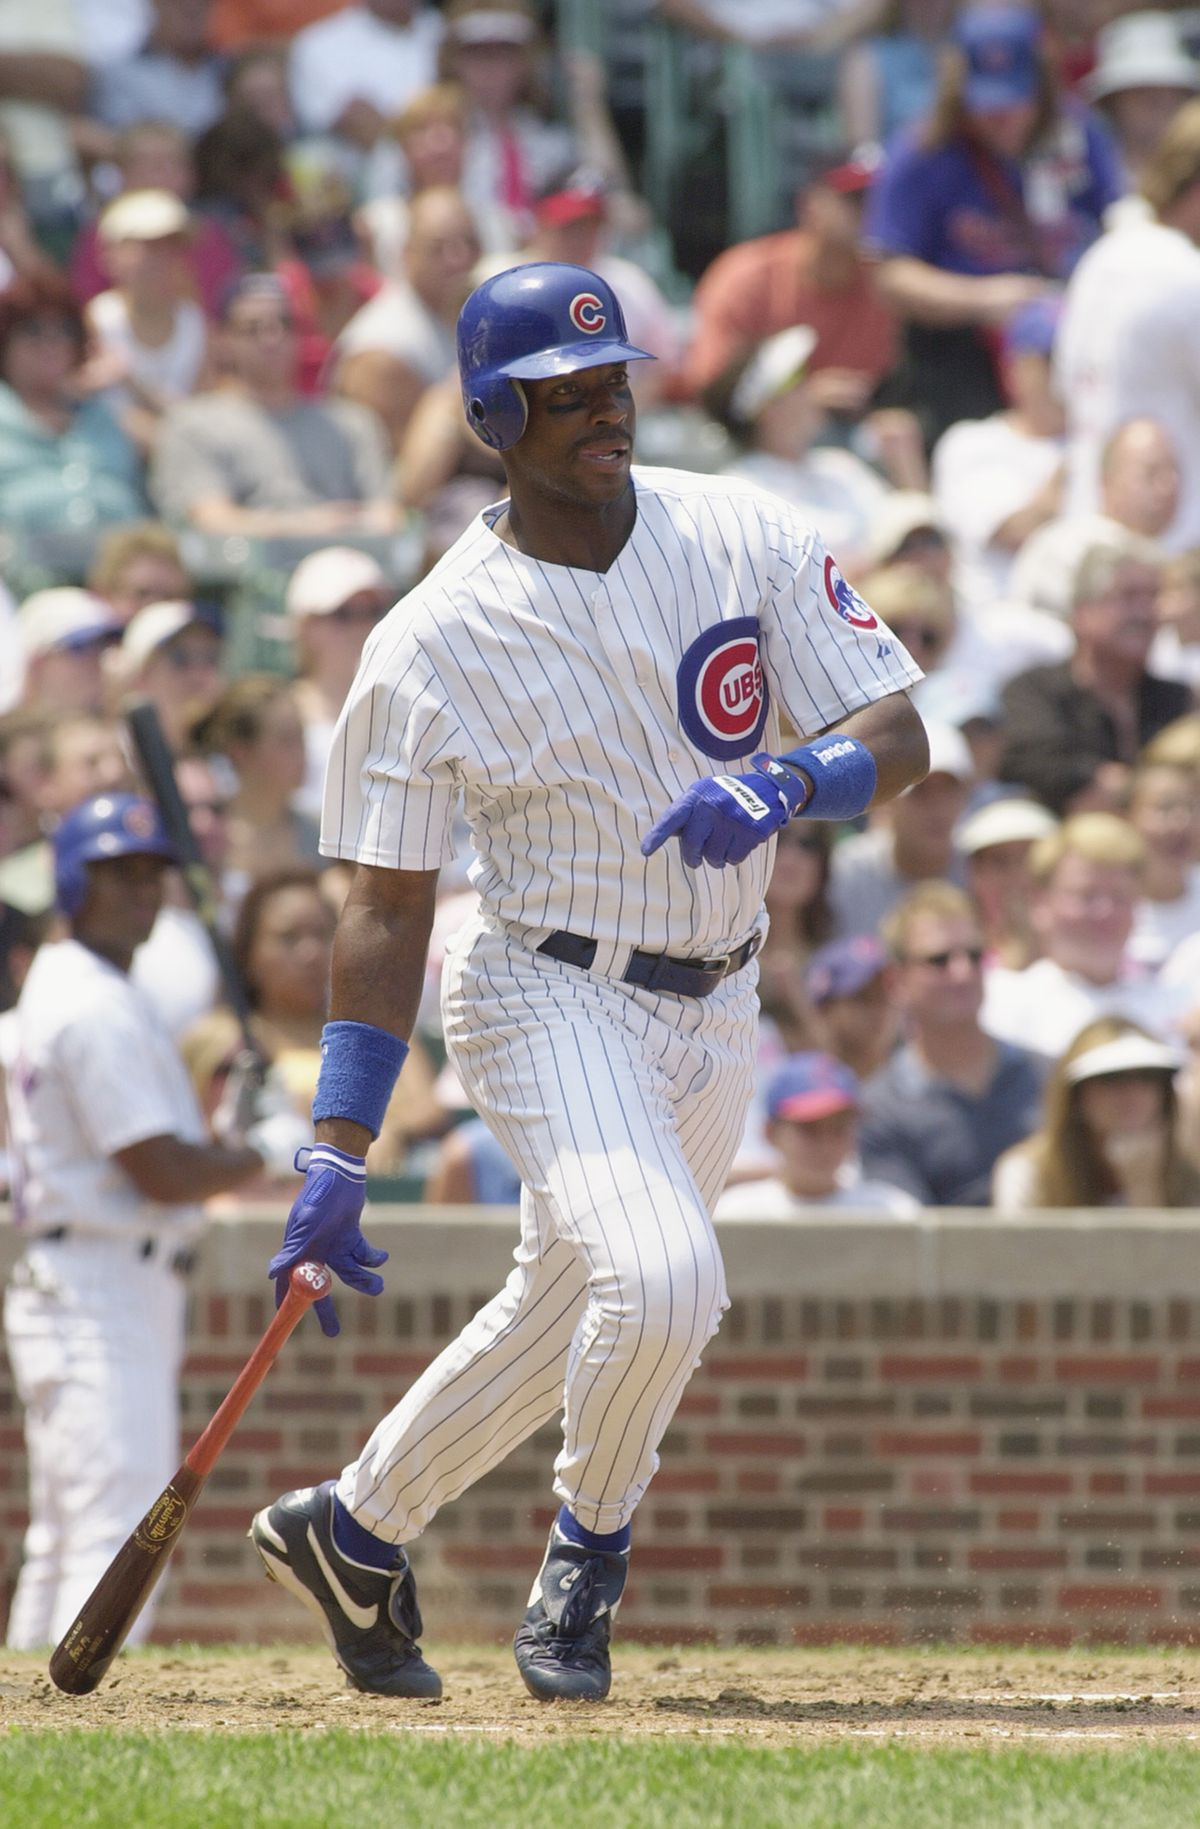 McGriff with the Cubs